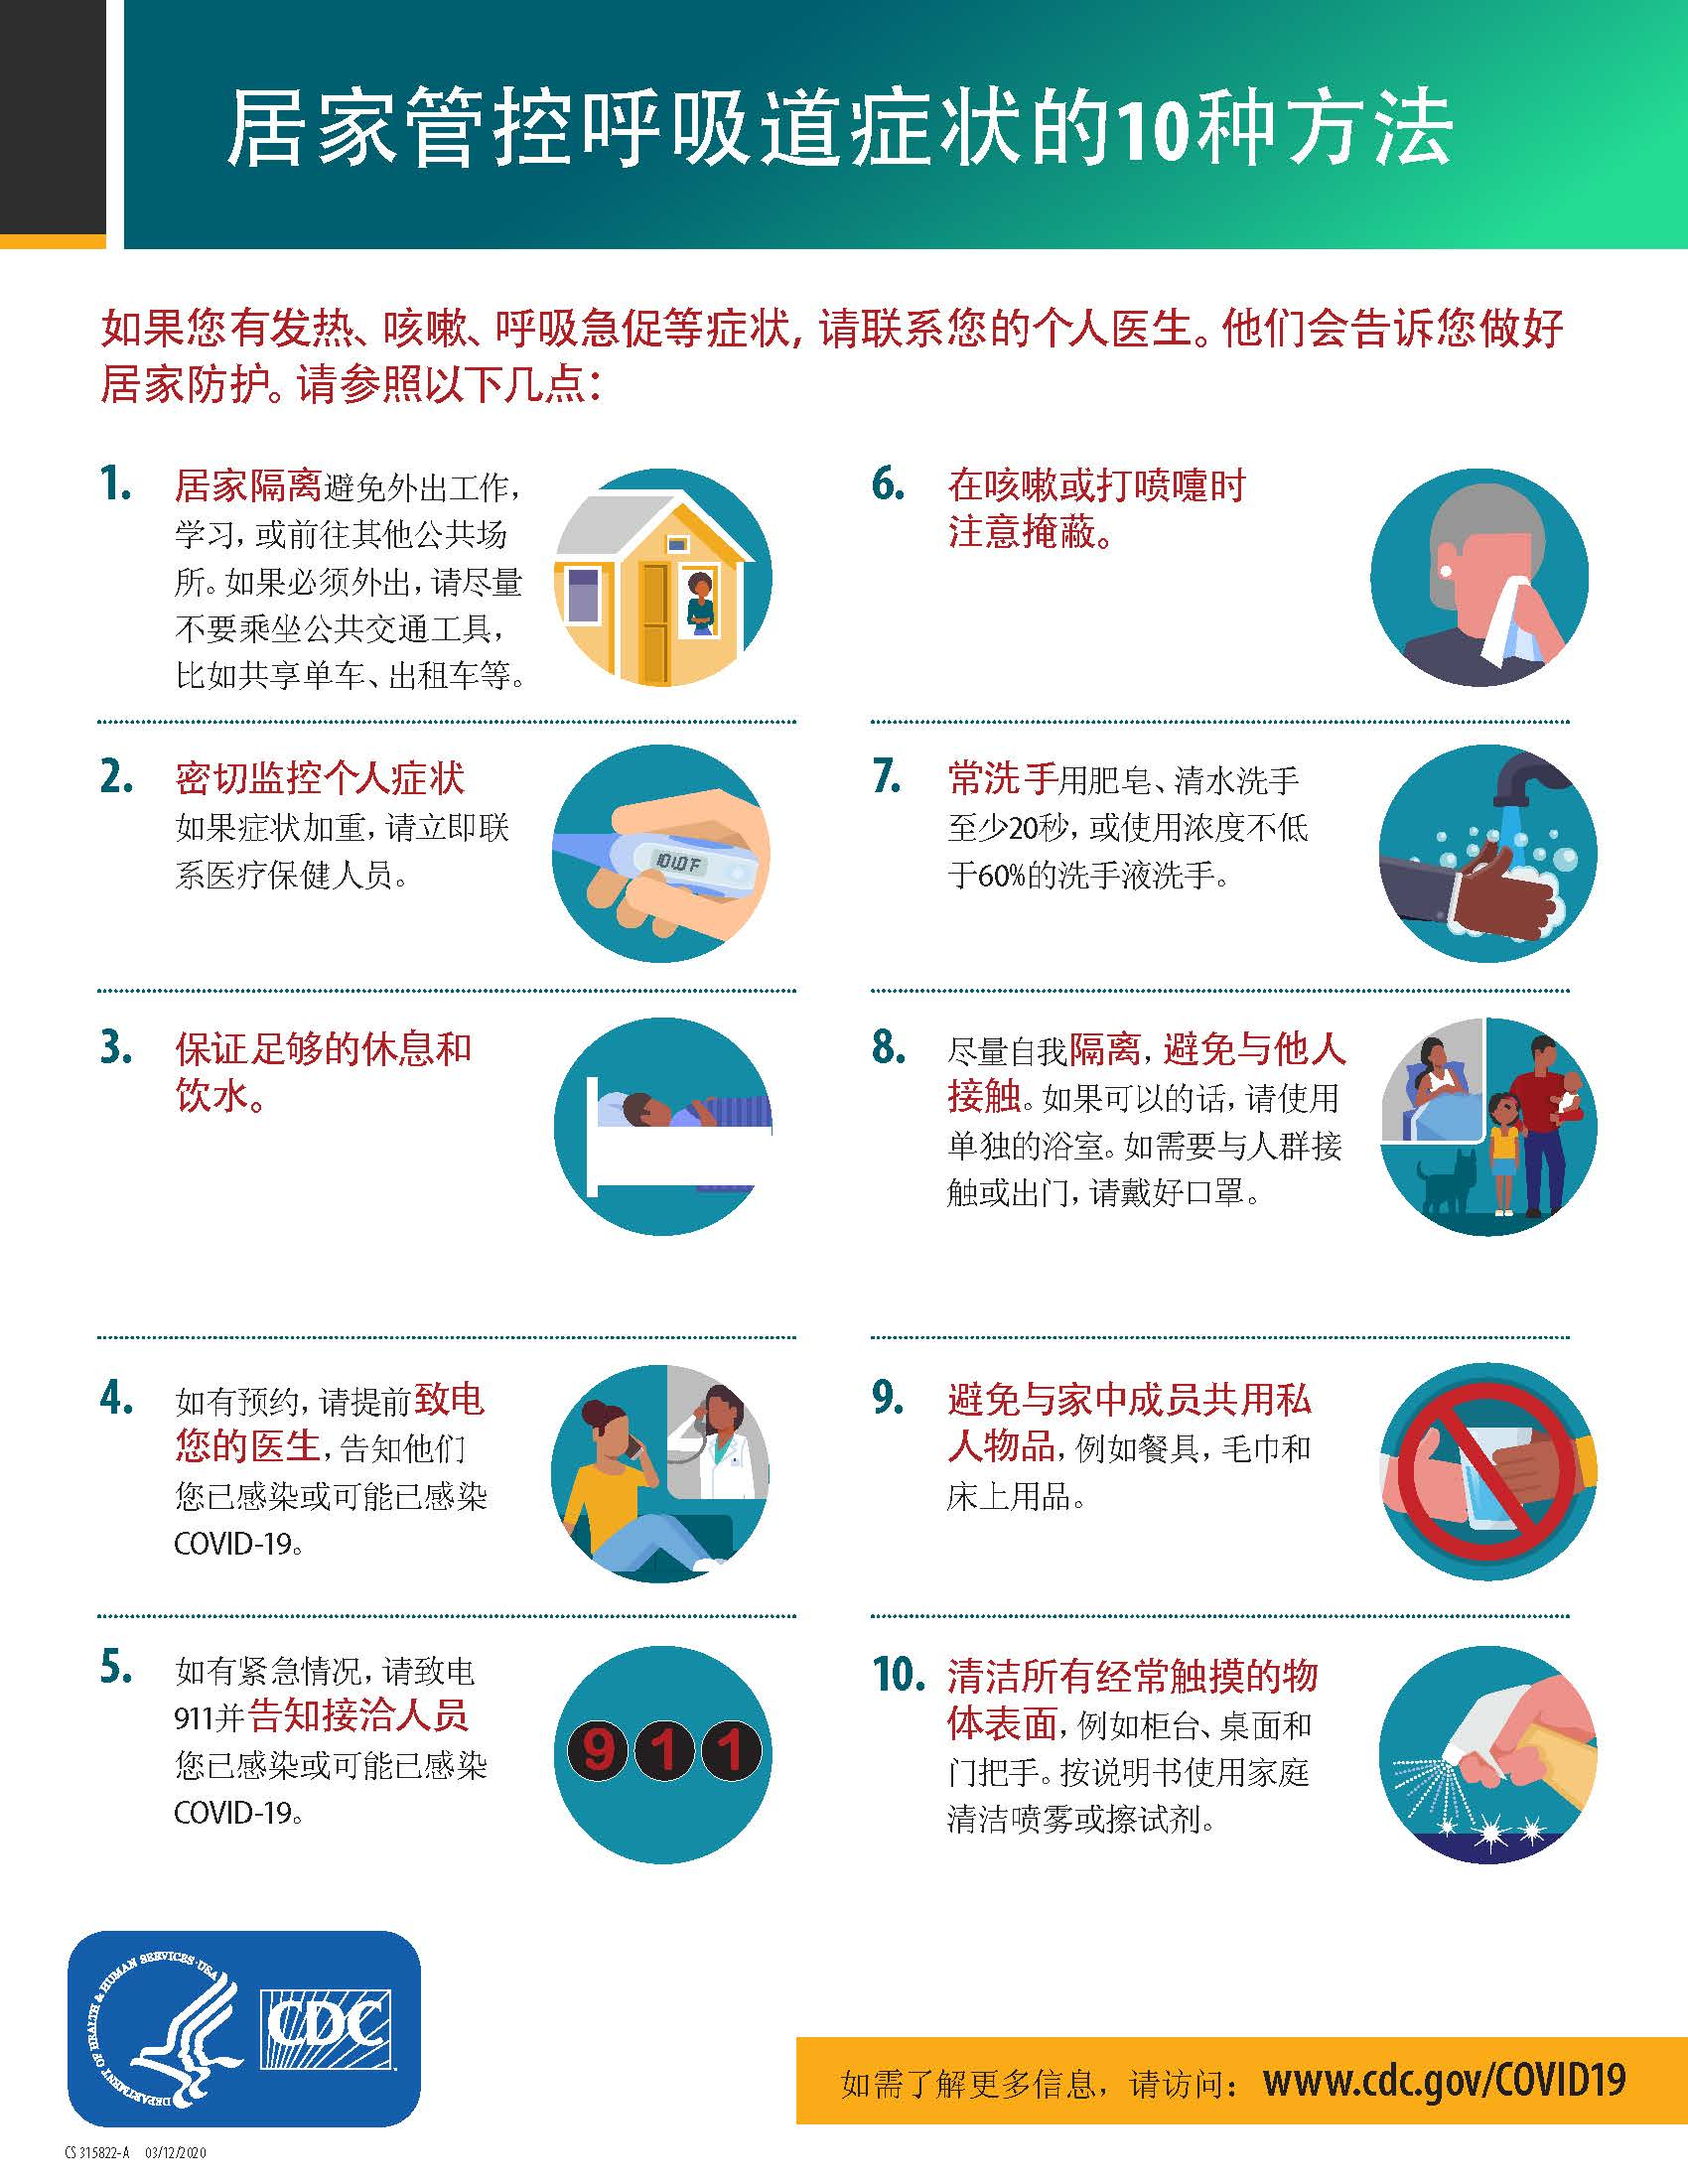 10 Ways to Manage Respiratory Symptoms at Home (Chinese)